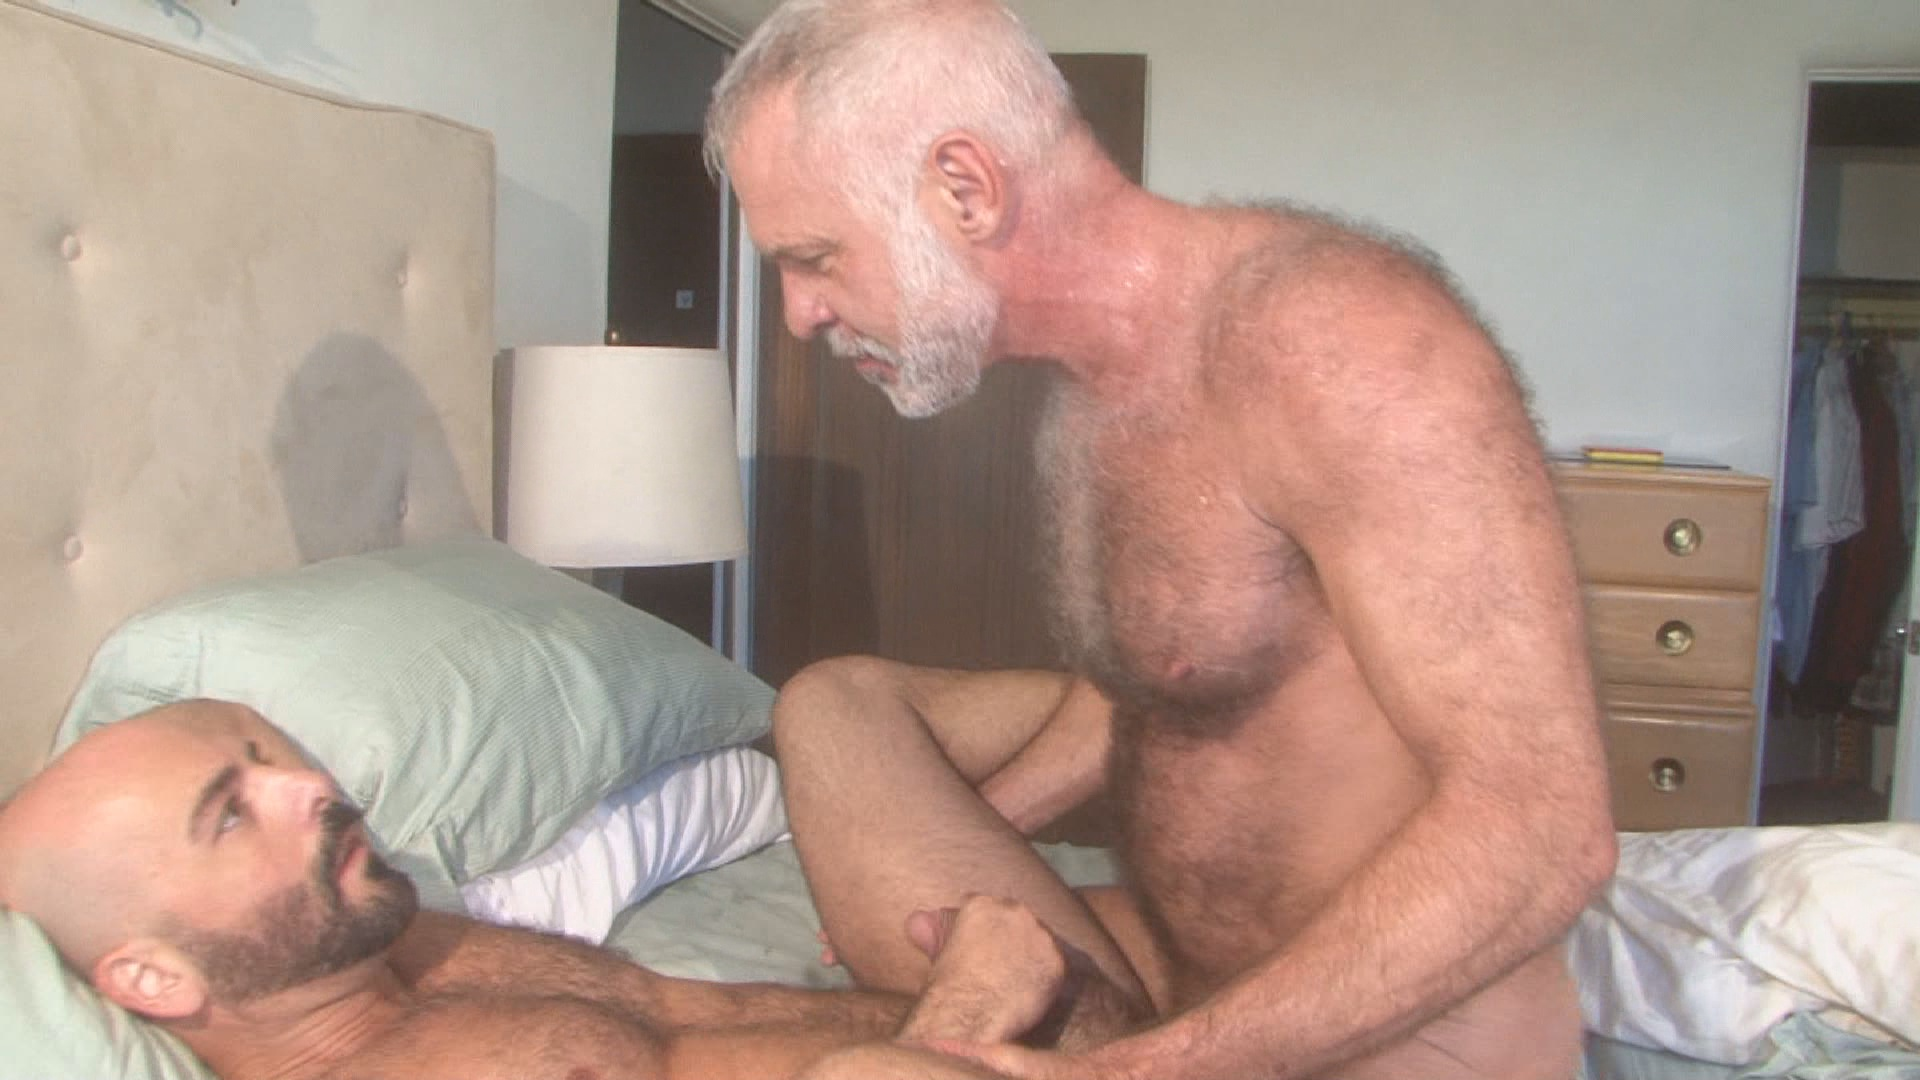 Real Men 28: Muscle And Fur Xvideo gay